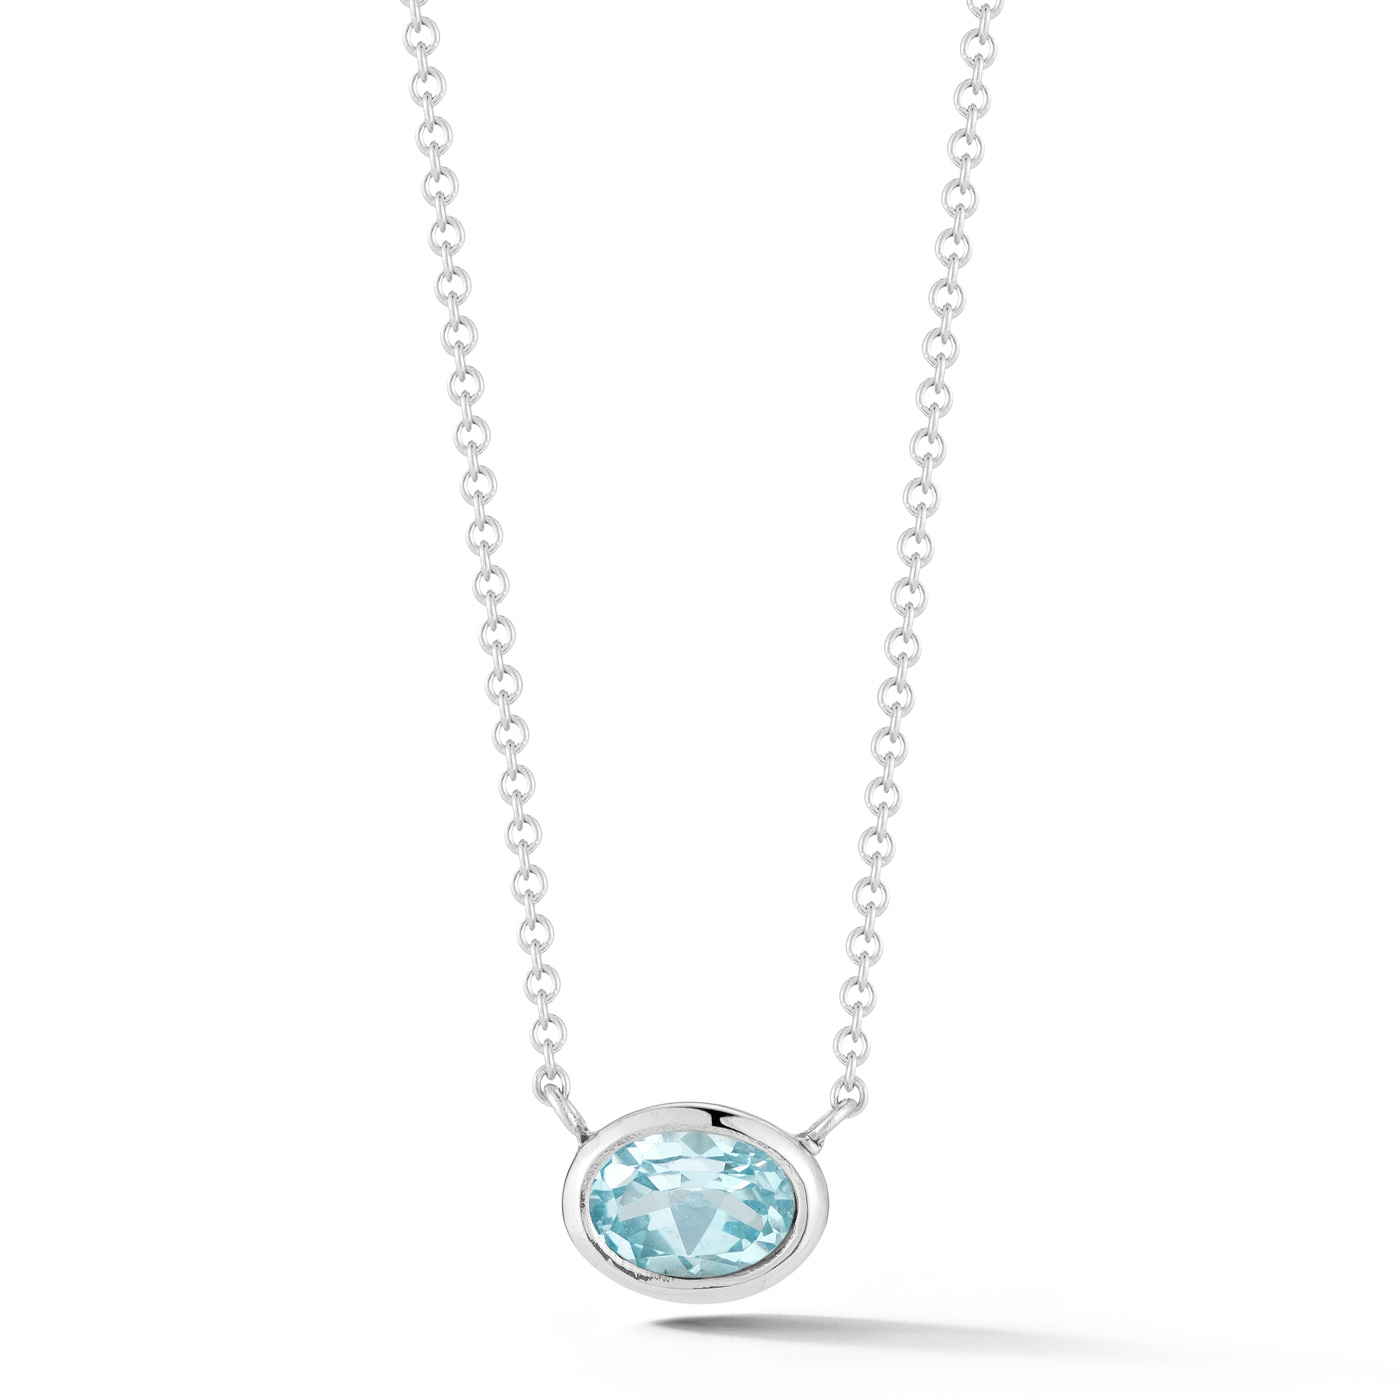 bezel value jewelry gold grants pendant rose set feature best diamond ny product district